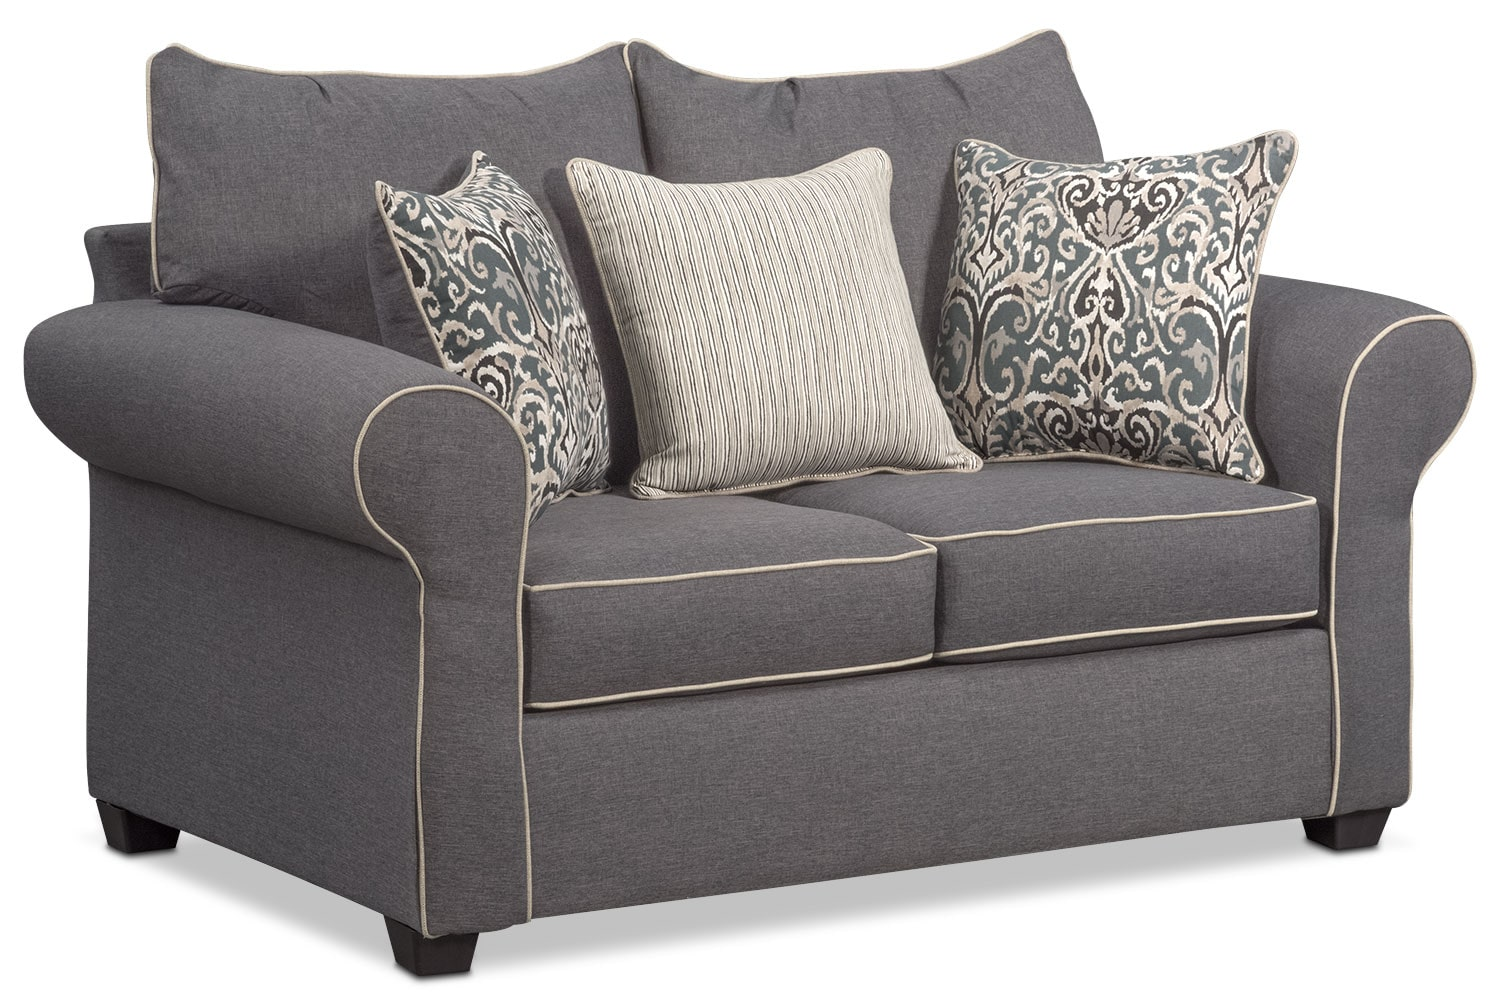 Carla Queen Memory Foam Sleeper Sofa, Loveseat, And Accent Chair Set   Gray